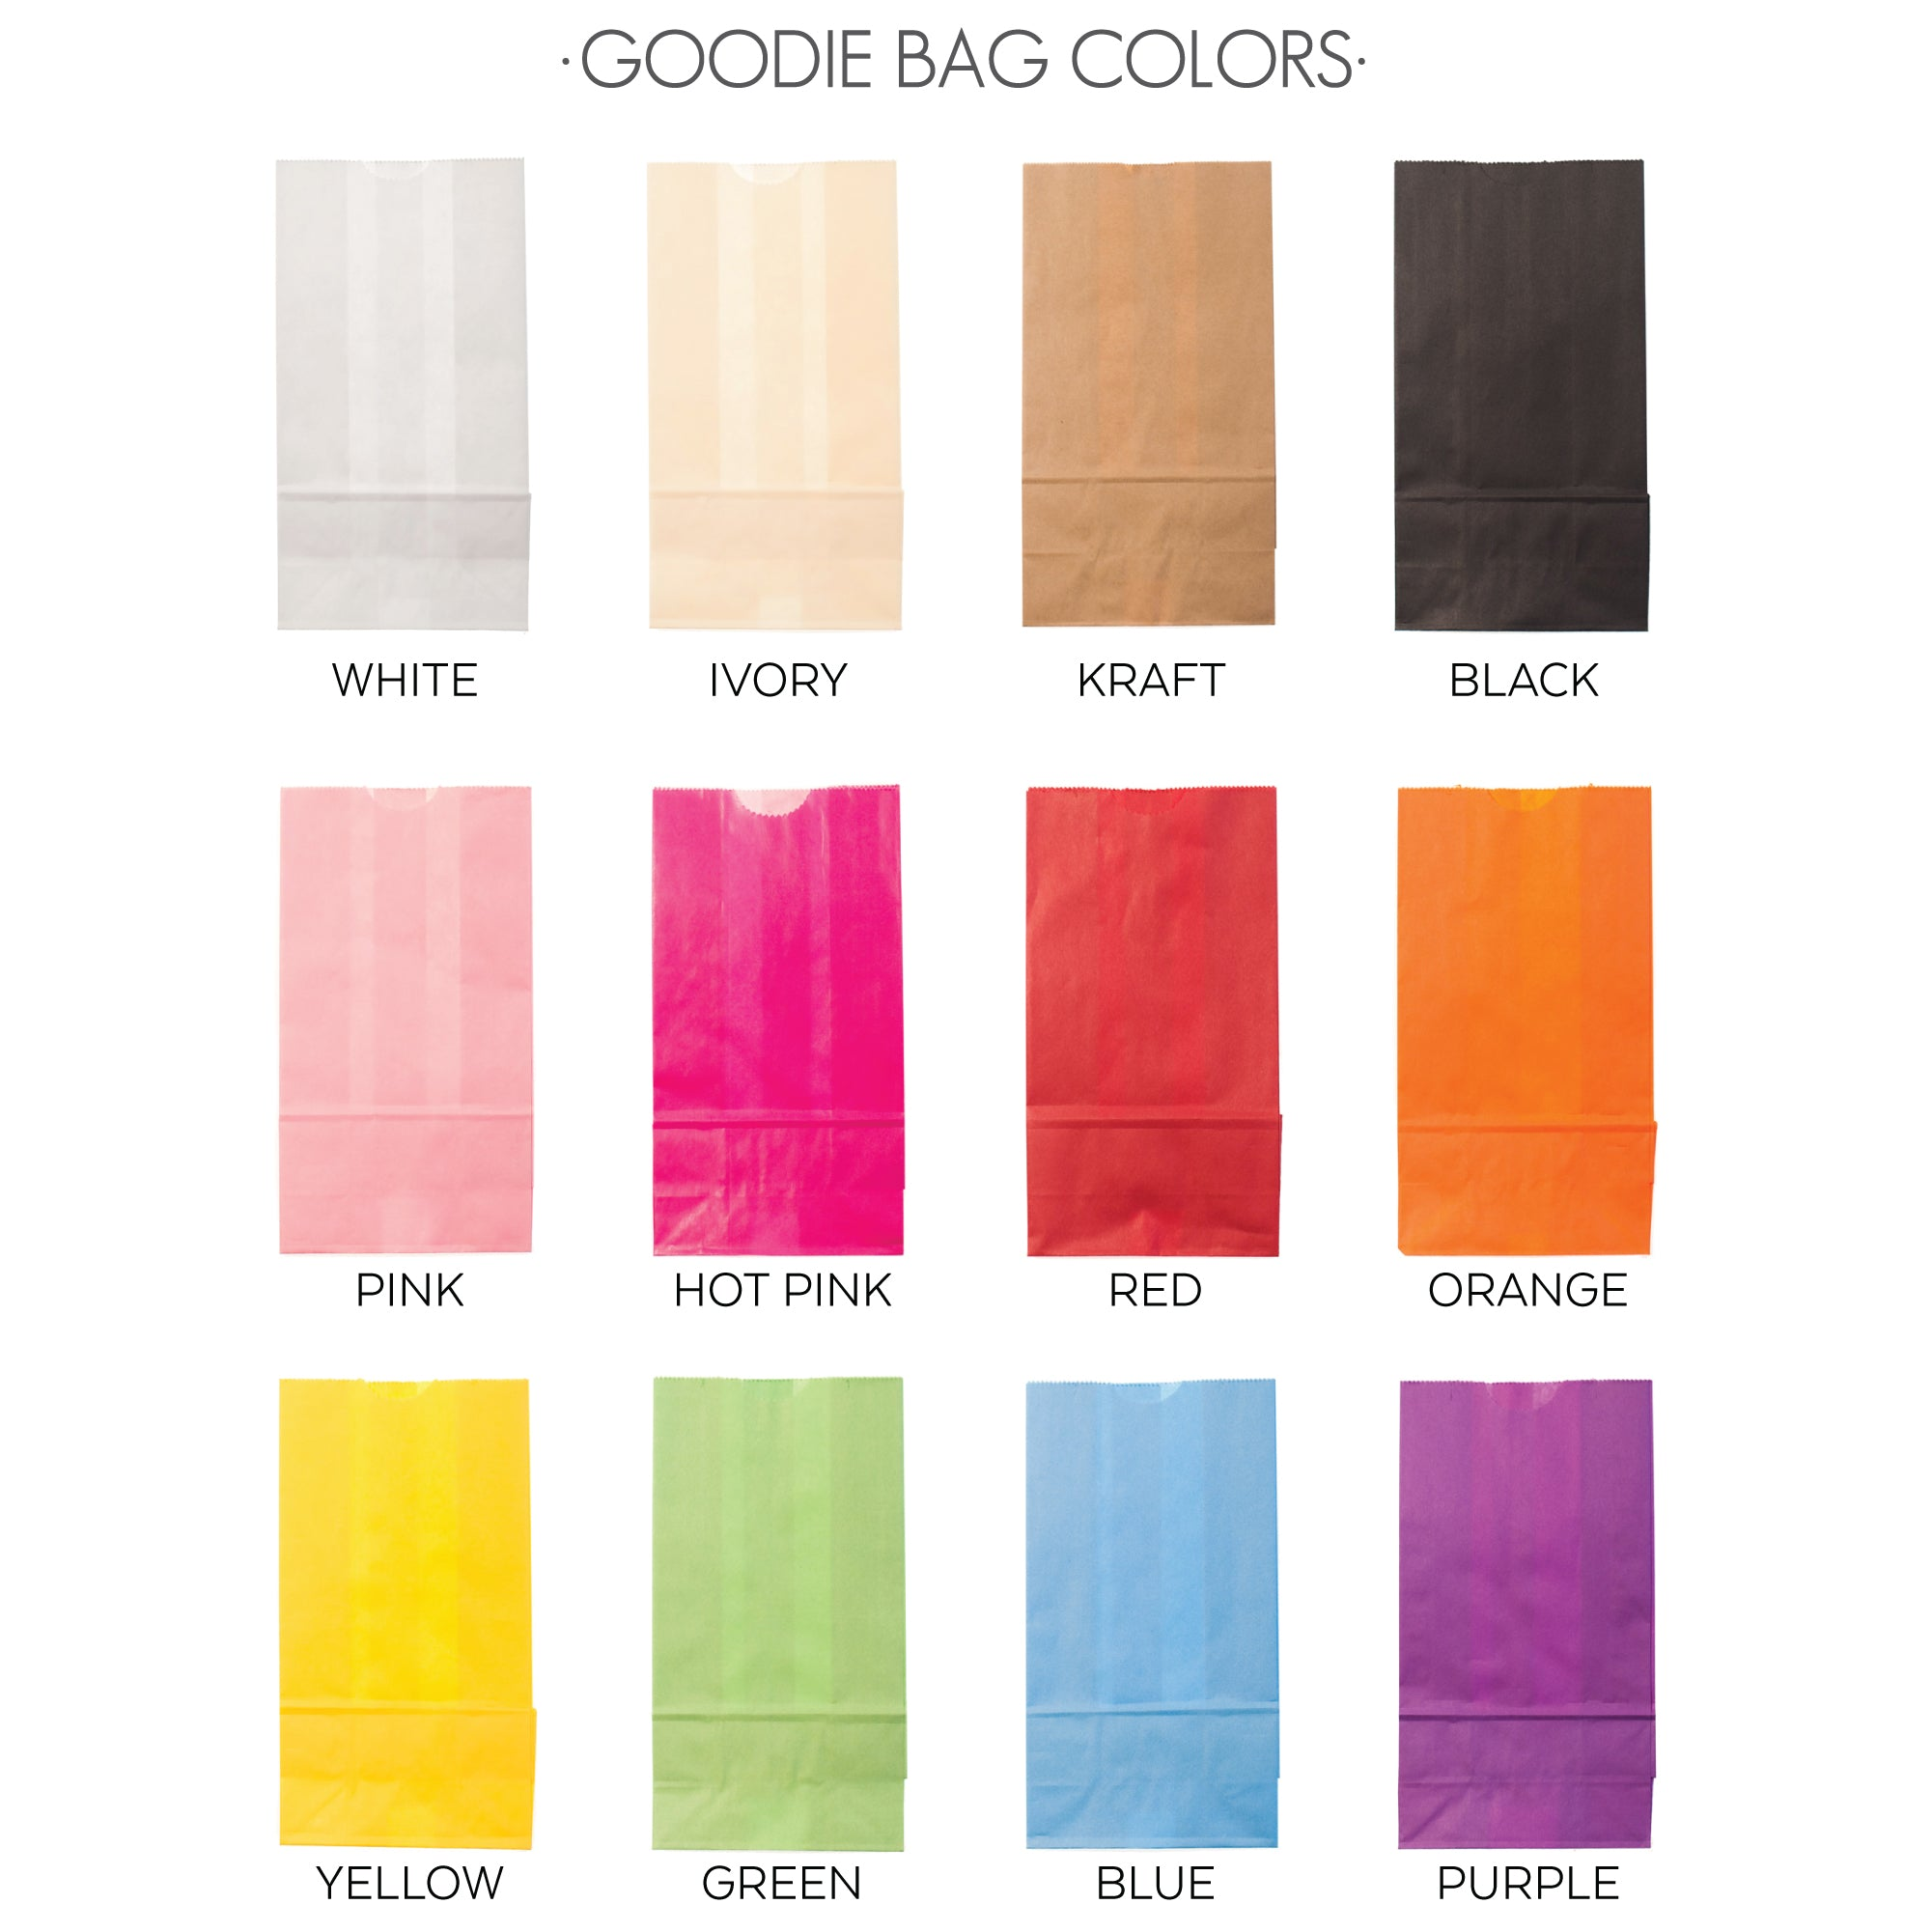 XX GOODIE BAG COLORS